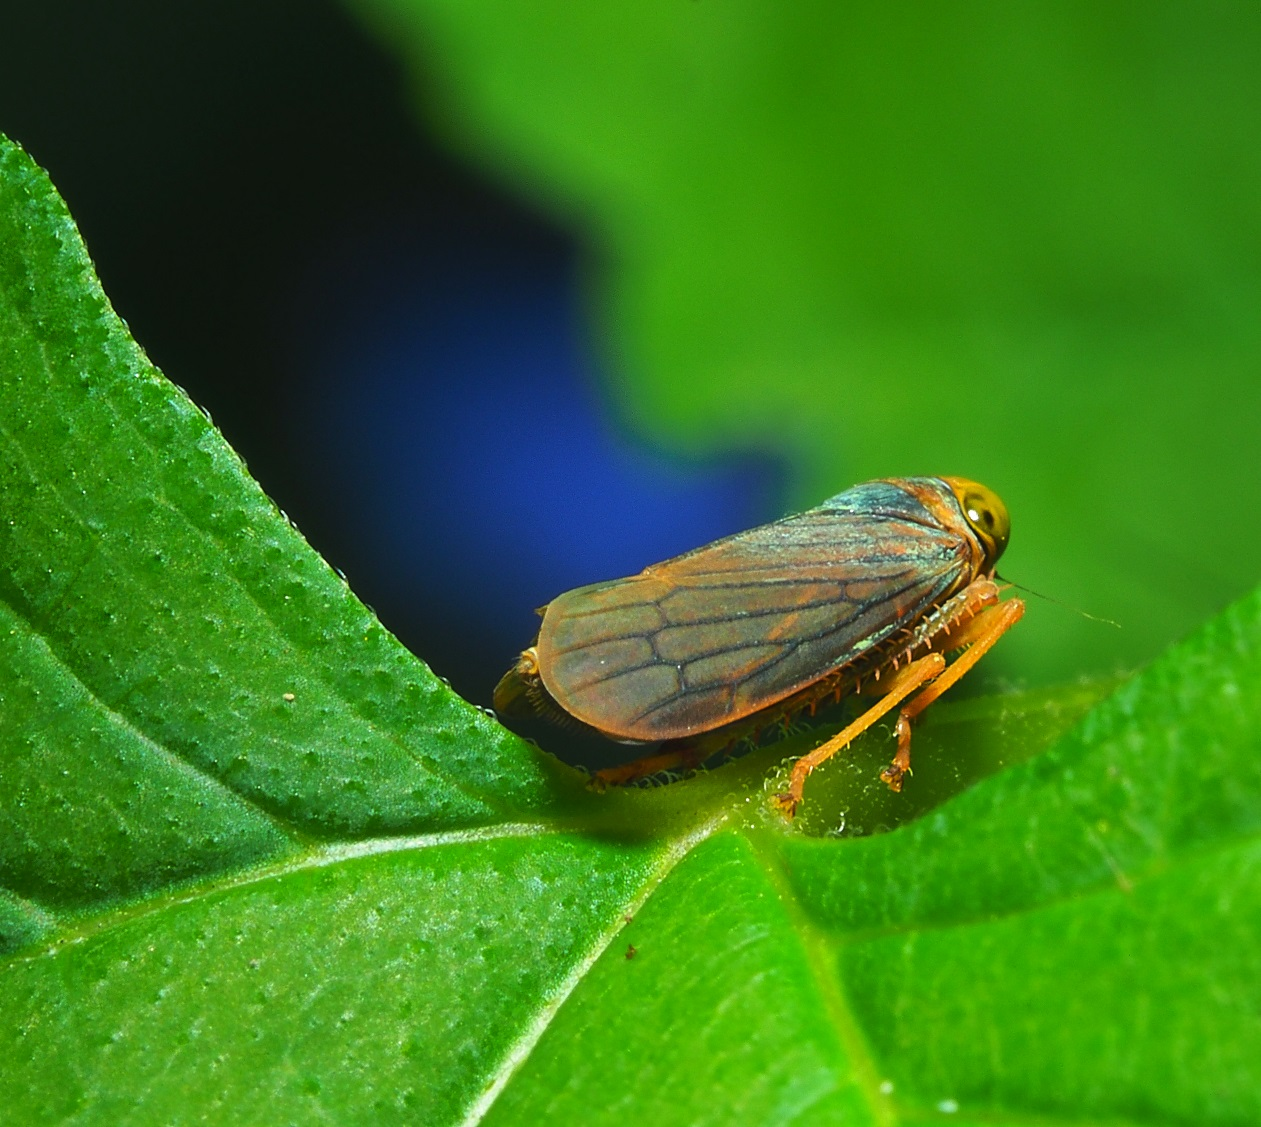 Gazing Leafhopper... there are over 20,000 species of leafhopper worldwide. Photo by Thomas Peace c. 2021